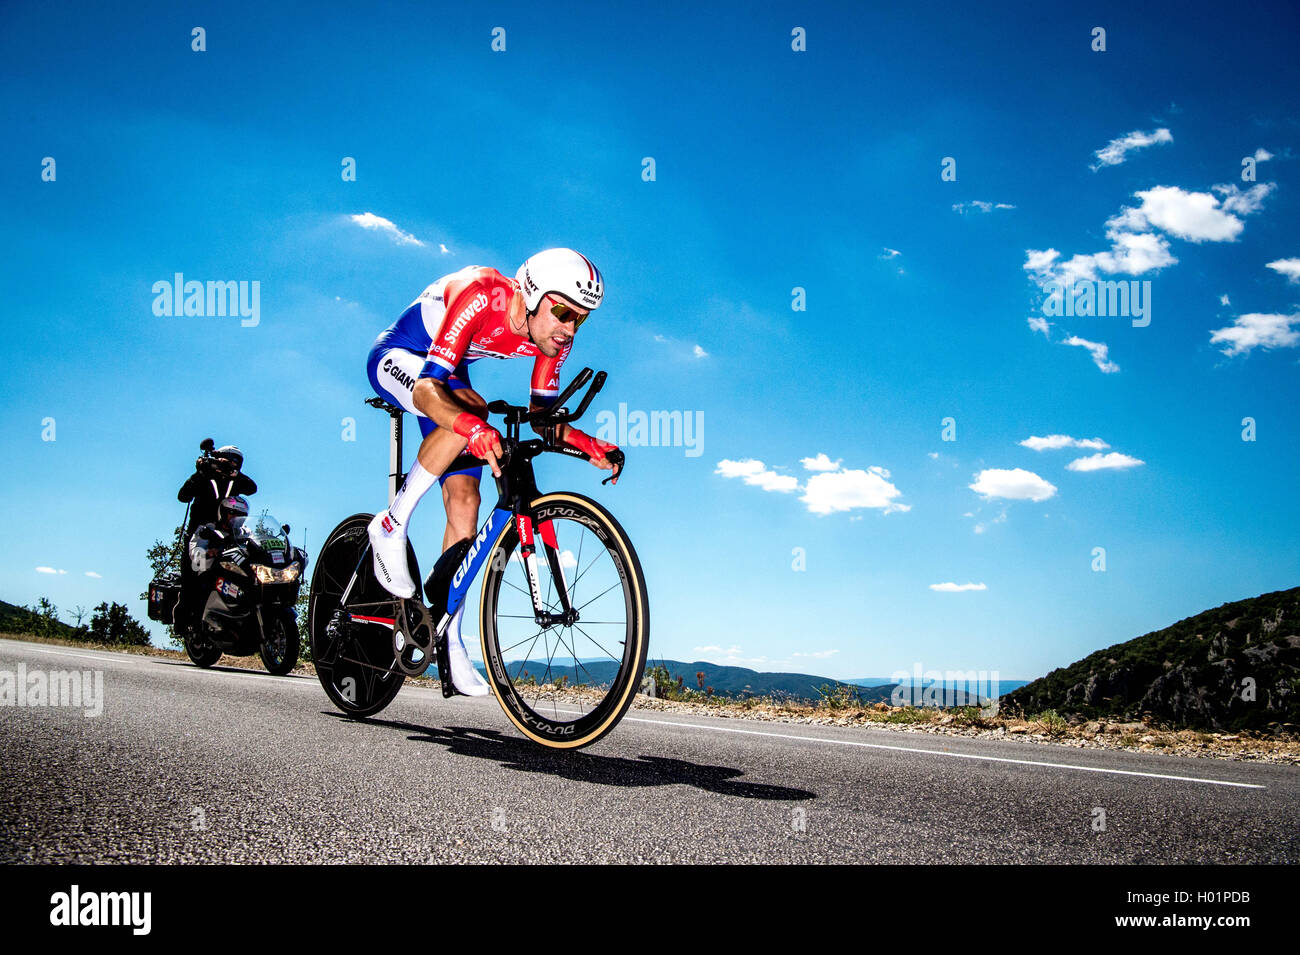 Tour de France 2016 Stadio 13 Tom Dumoulin (NED) Bourg-Saint-Andeol de La Carerne du pont-d'Arc 37.5km Time Immagini Stock